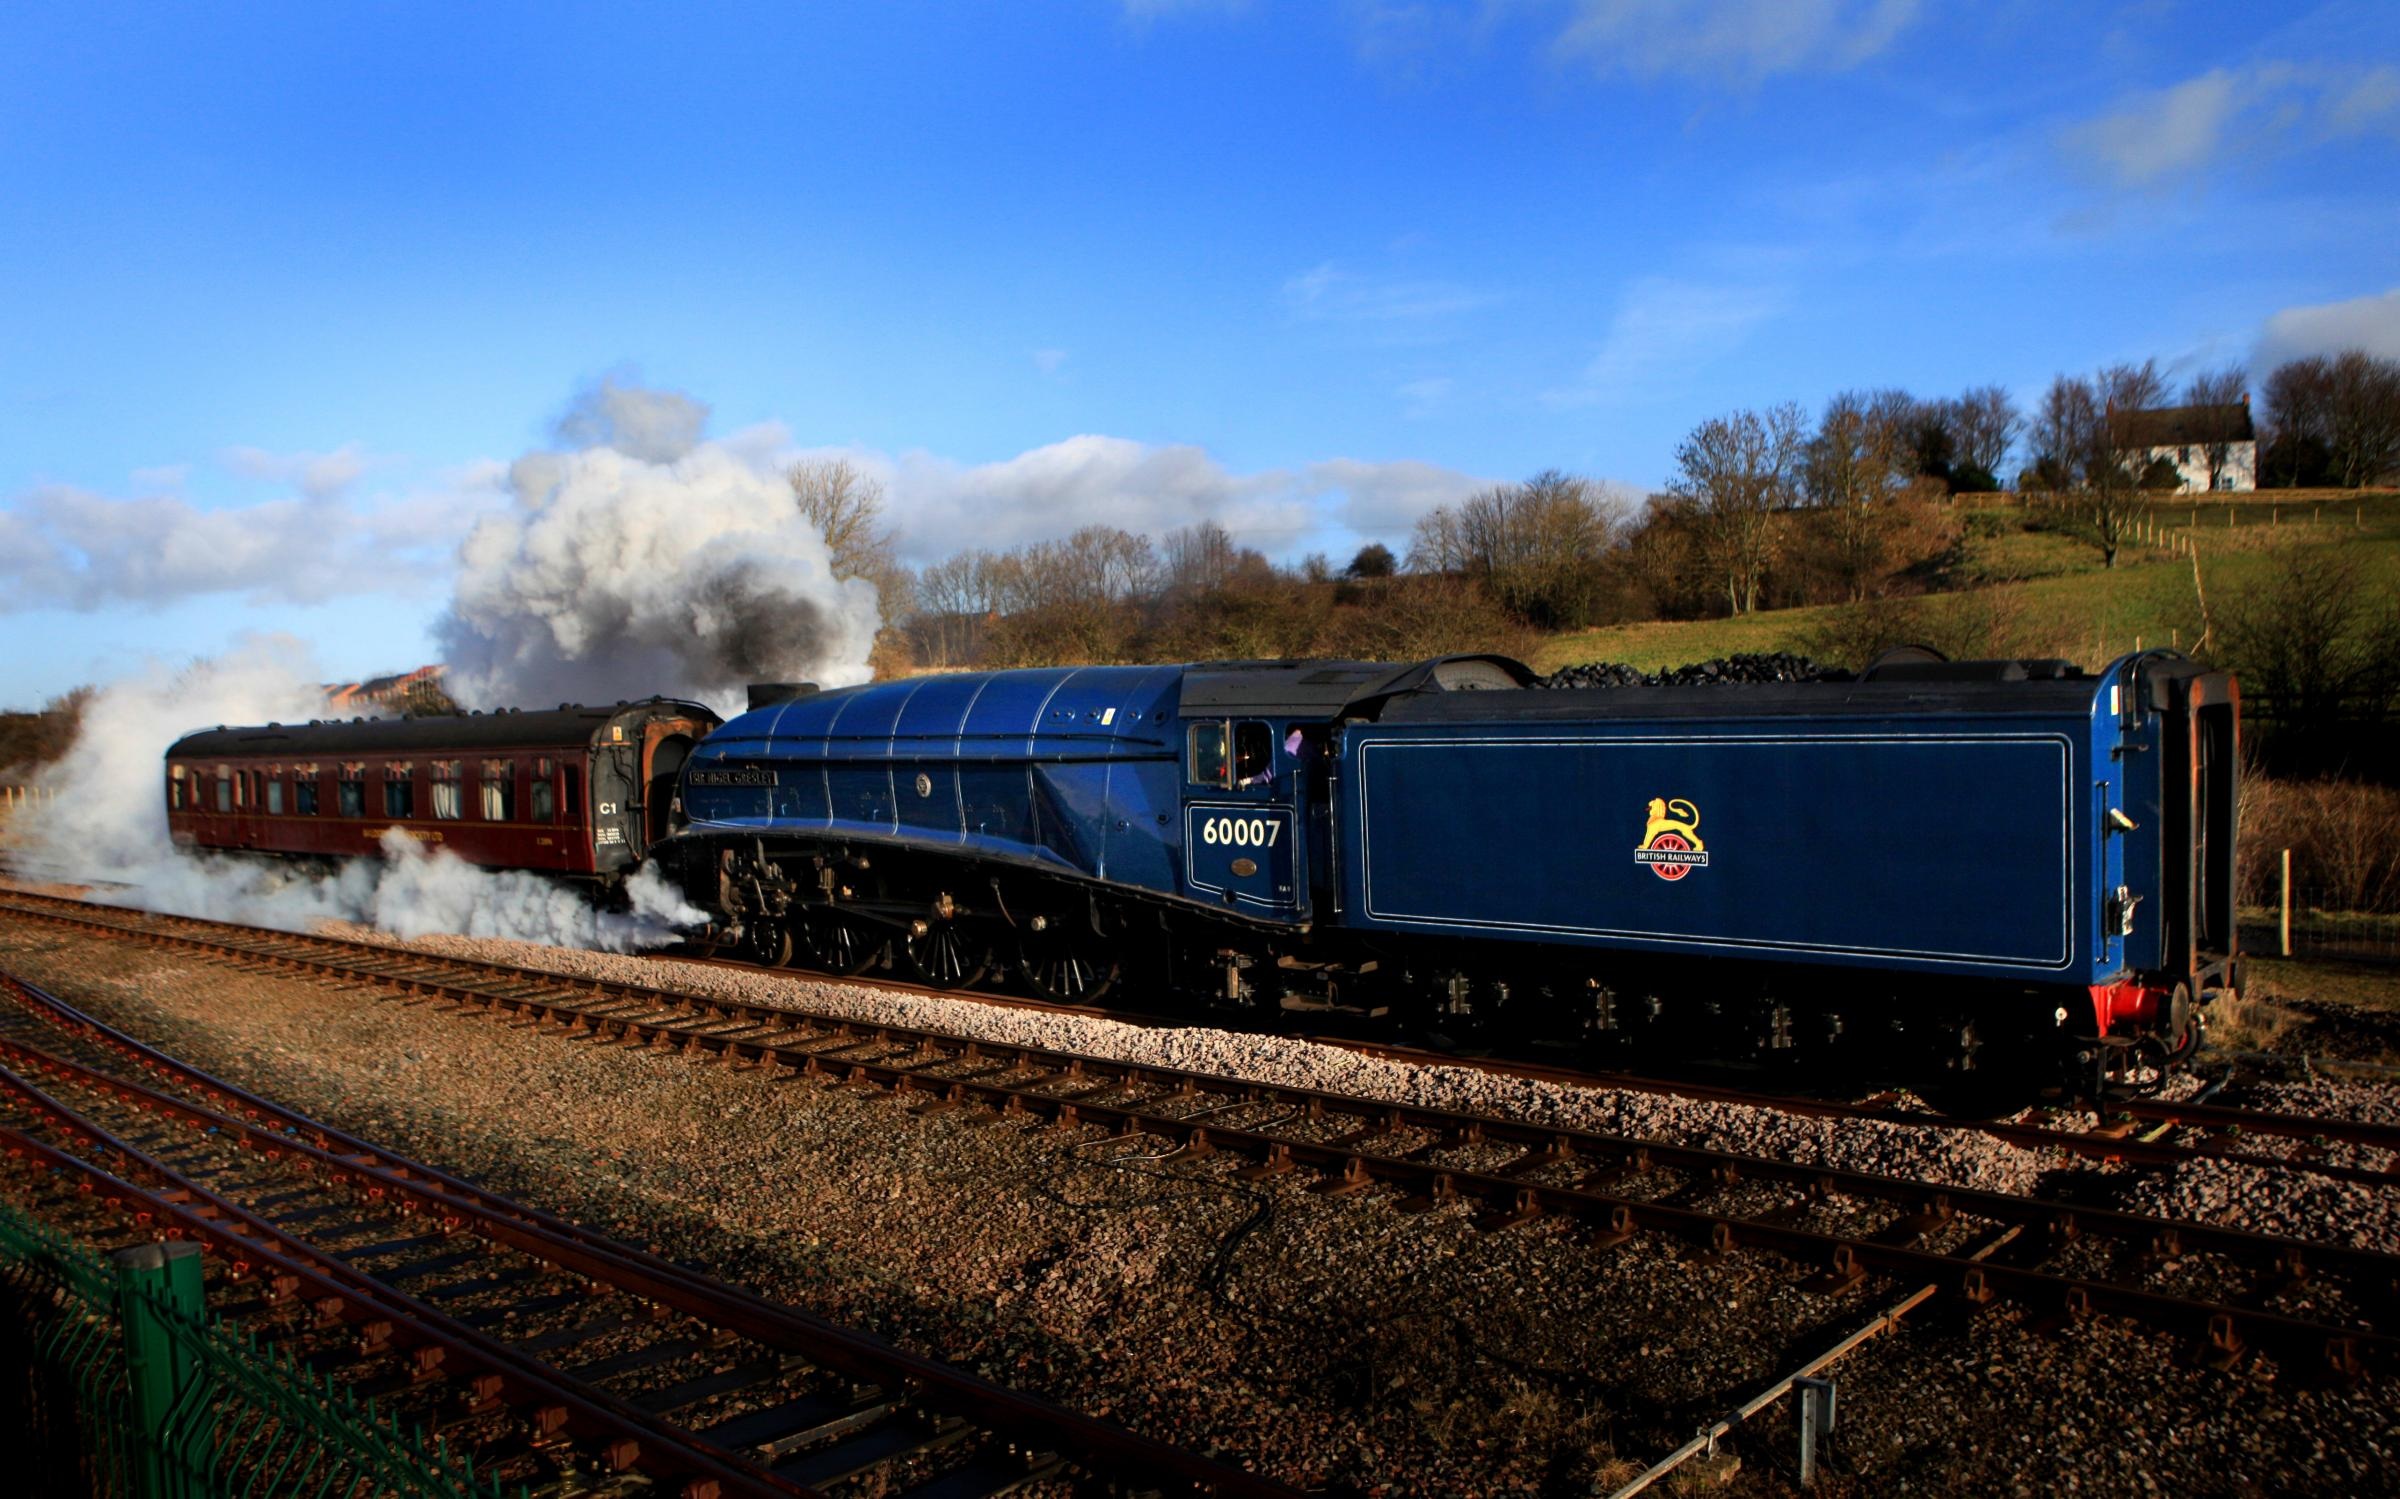 The A4 engine Sir Nigel Gresley steams from Locomotion